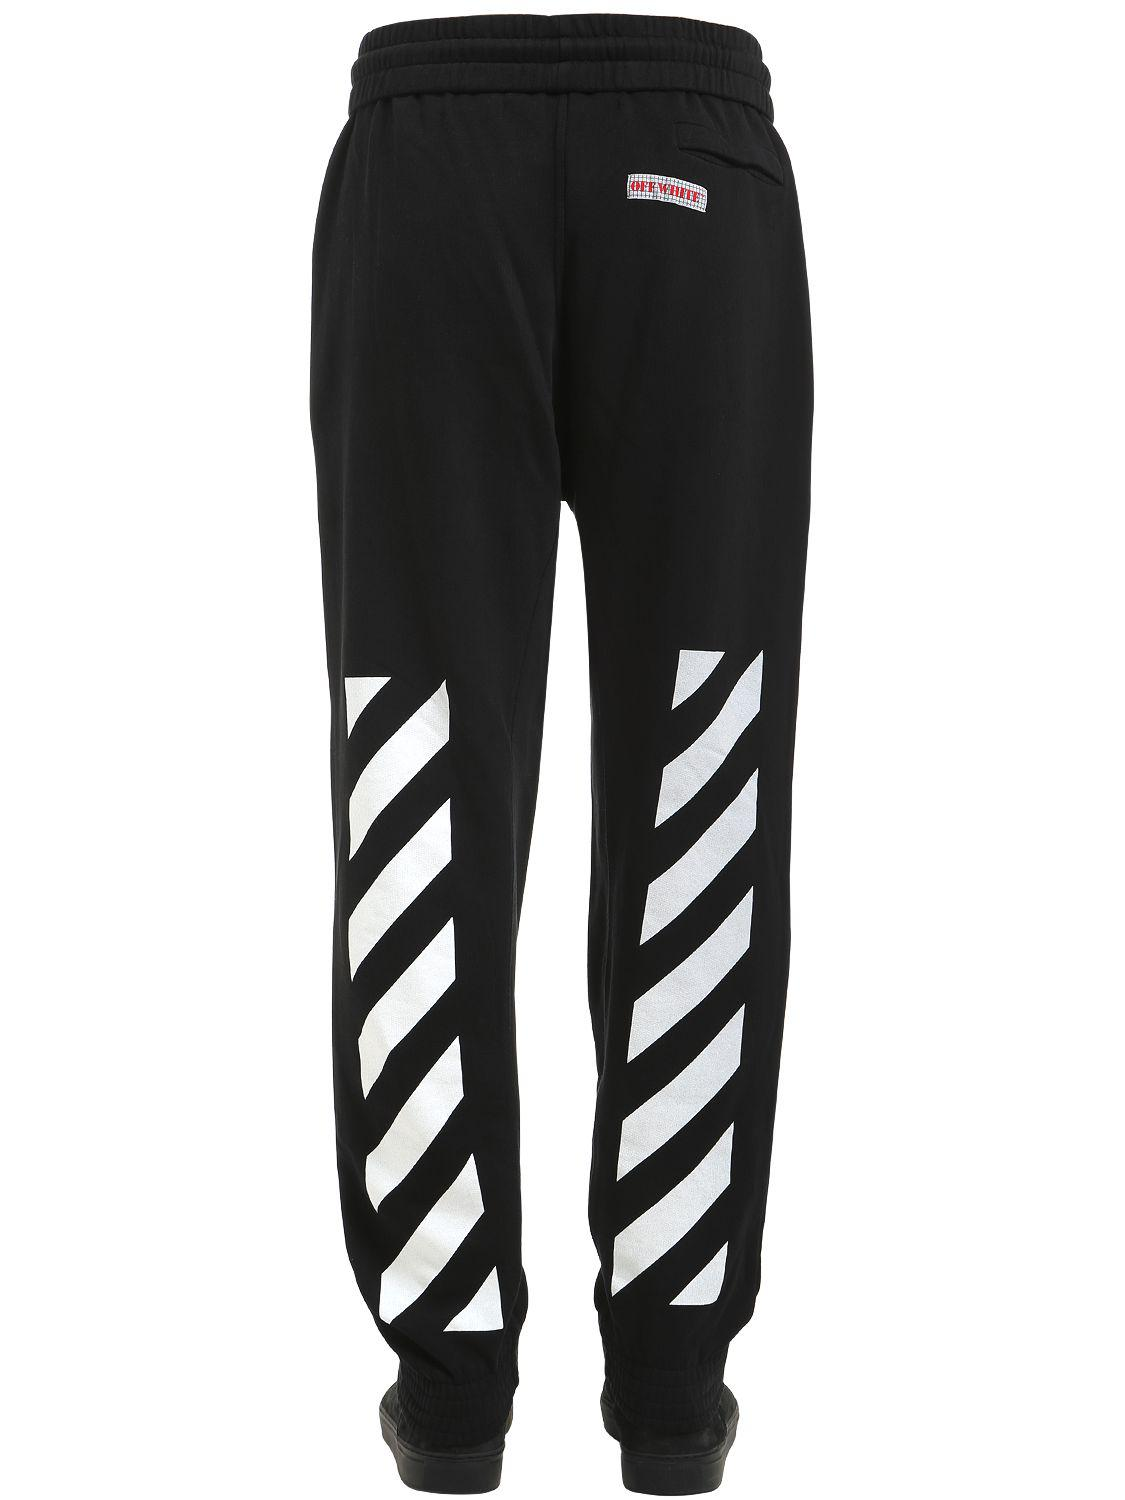 Grey Arrows Sweatpants Off-white